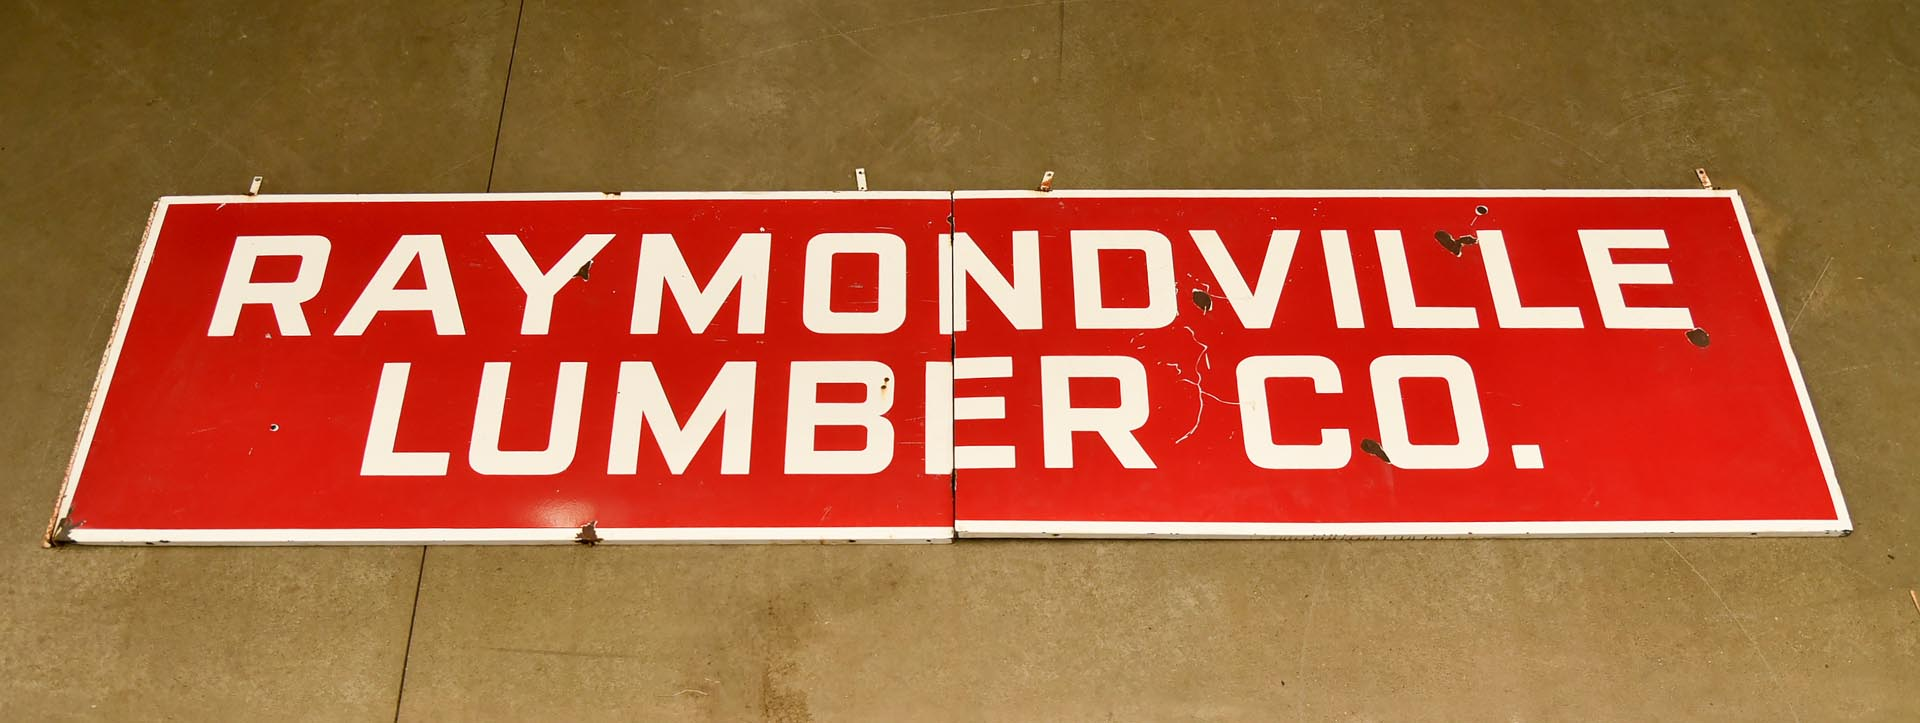 Raymondville Mo. Lumber Co Porcelain Sign